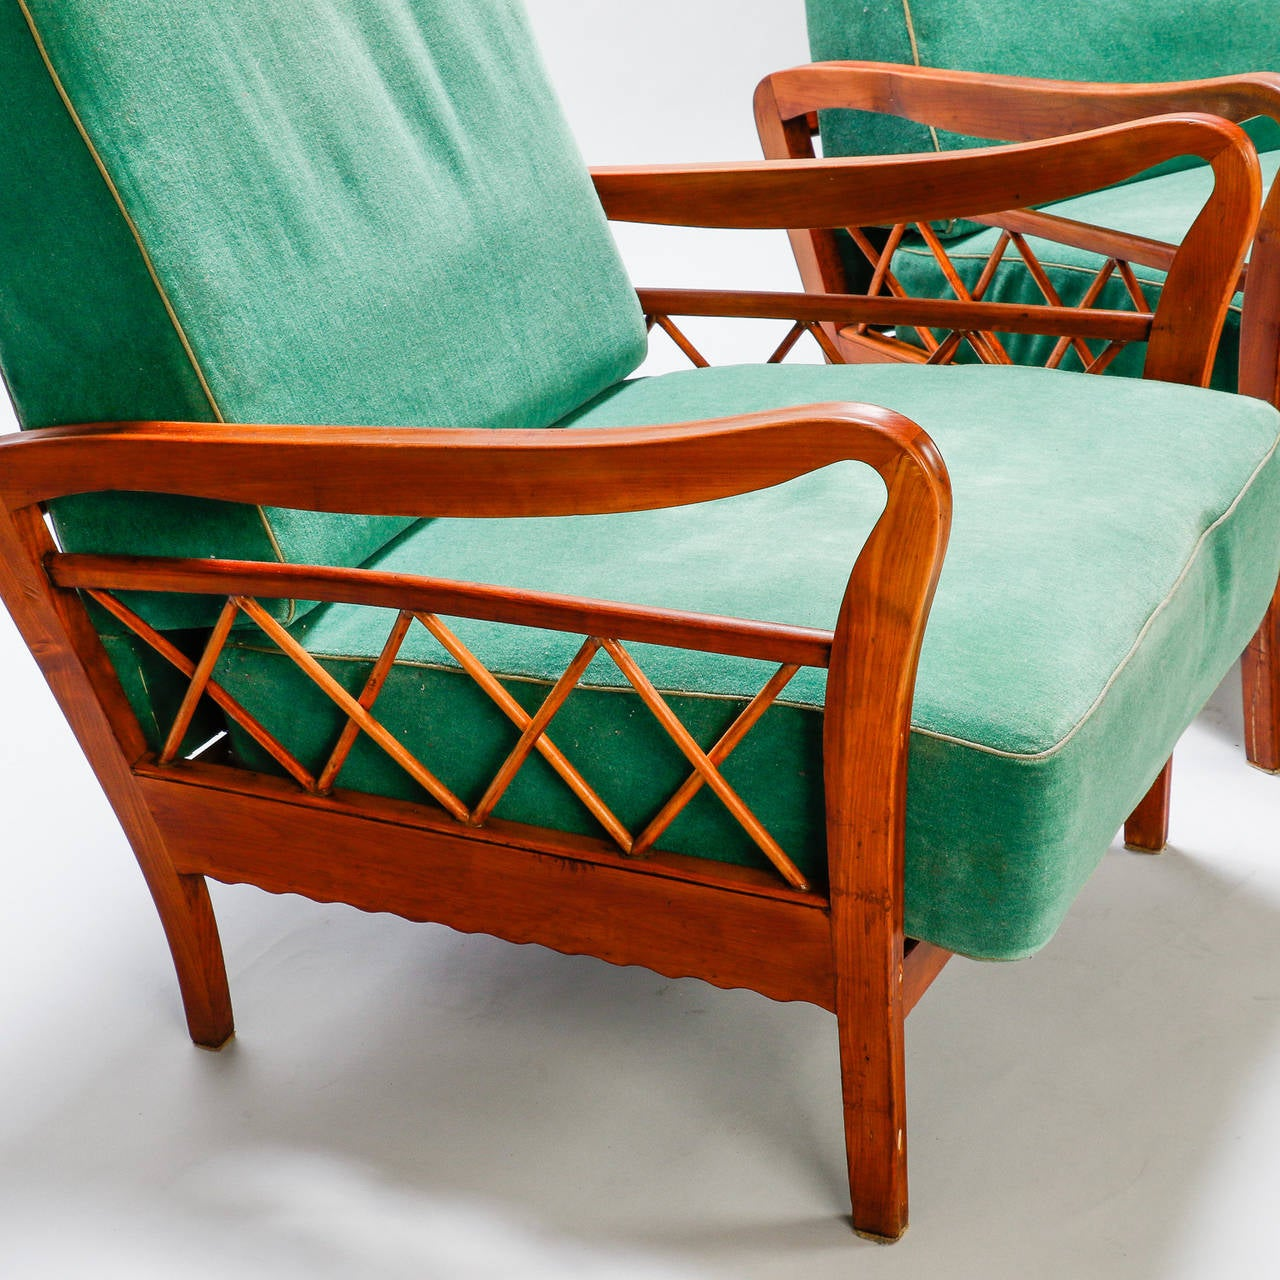 Mid-20th Century Pair of Open Work Lounge Chairs in the Manner of Paolo Buffa For Sale